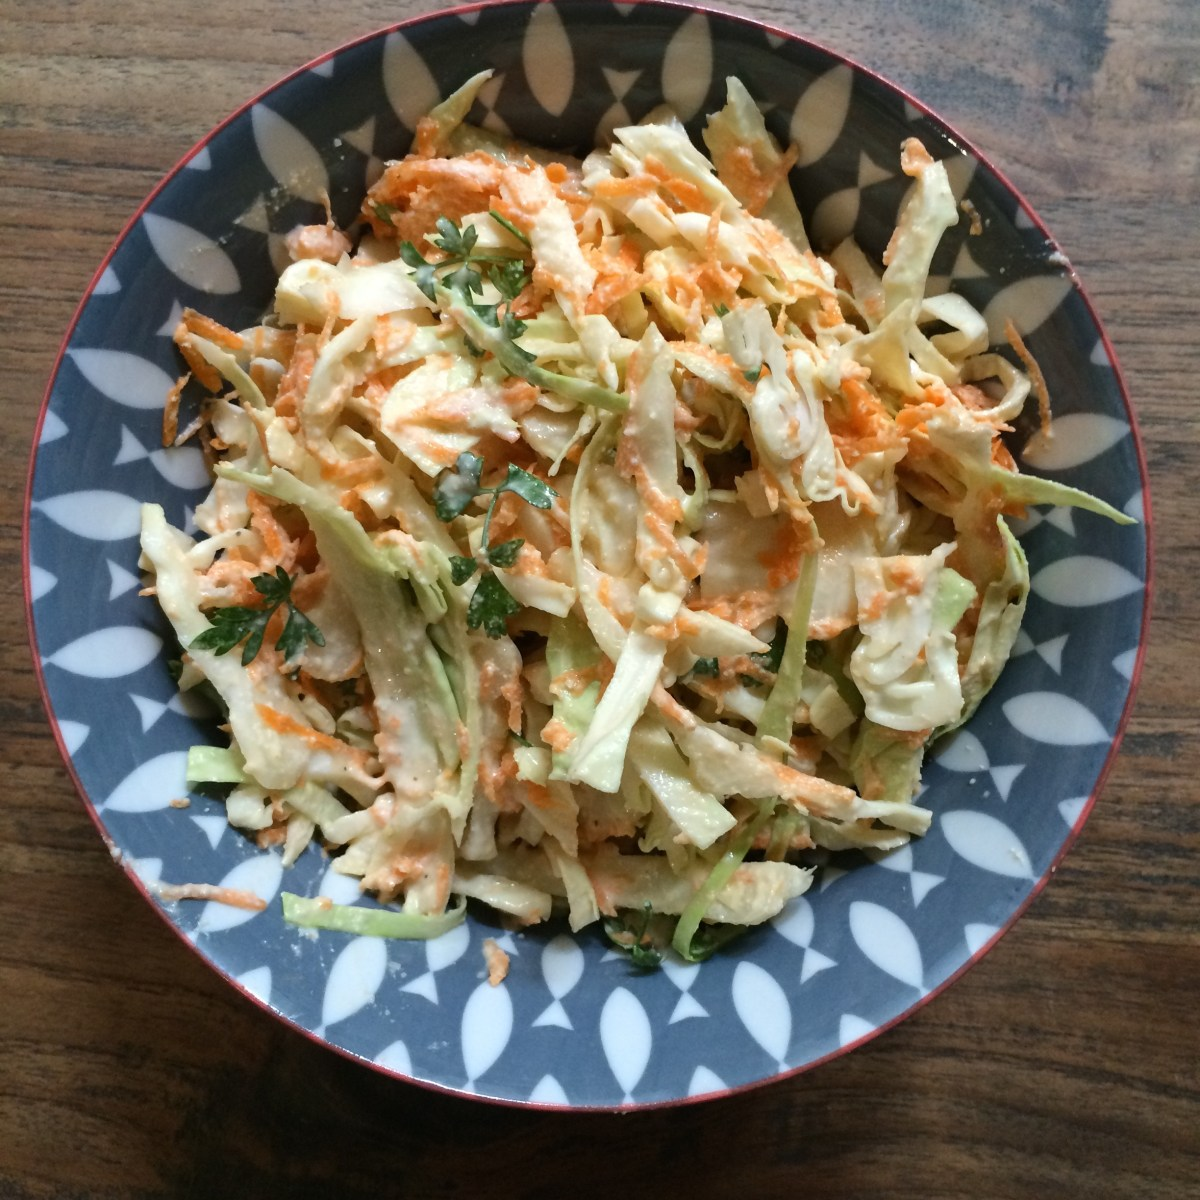 Vegan Coleslaw (inspired by Dr Libby, Real Food Chef)